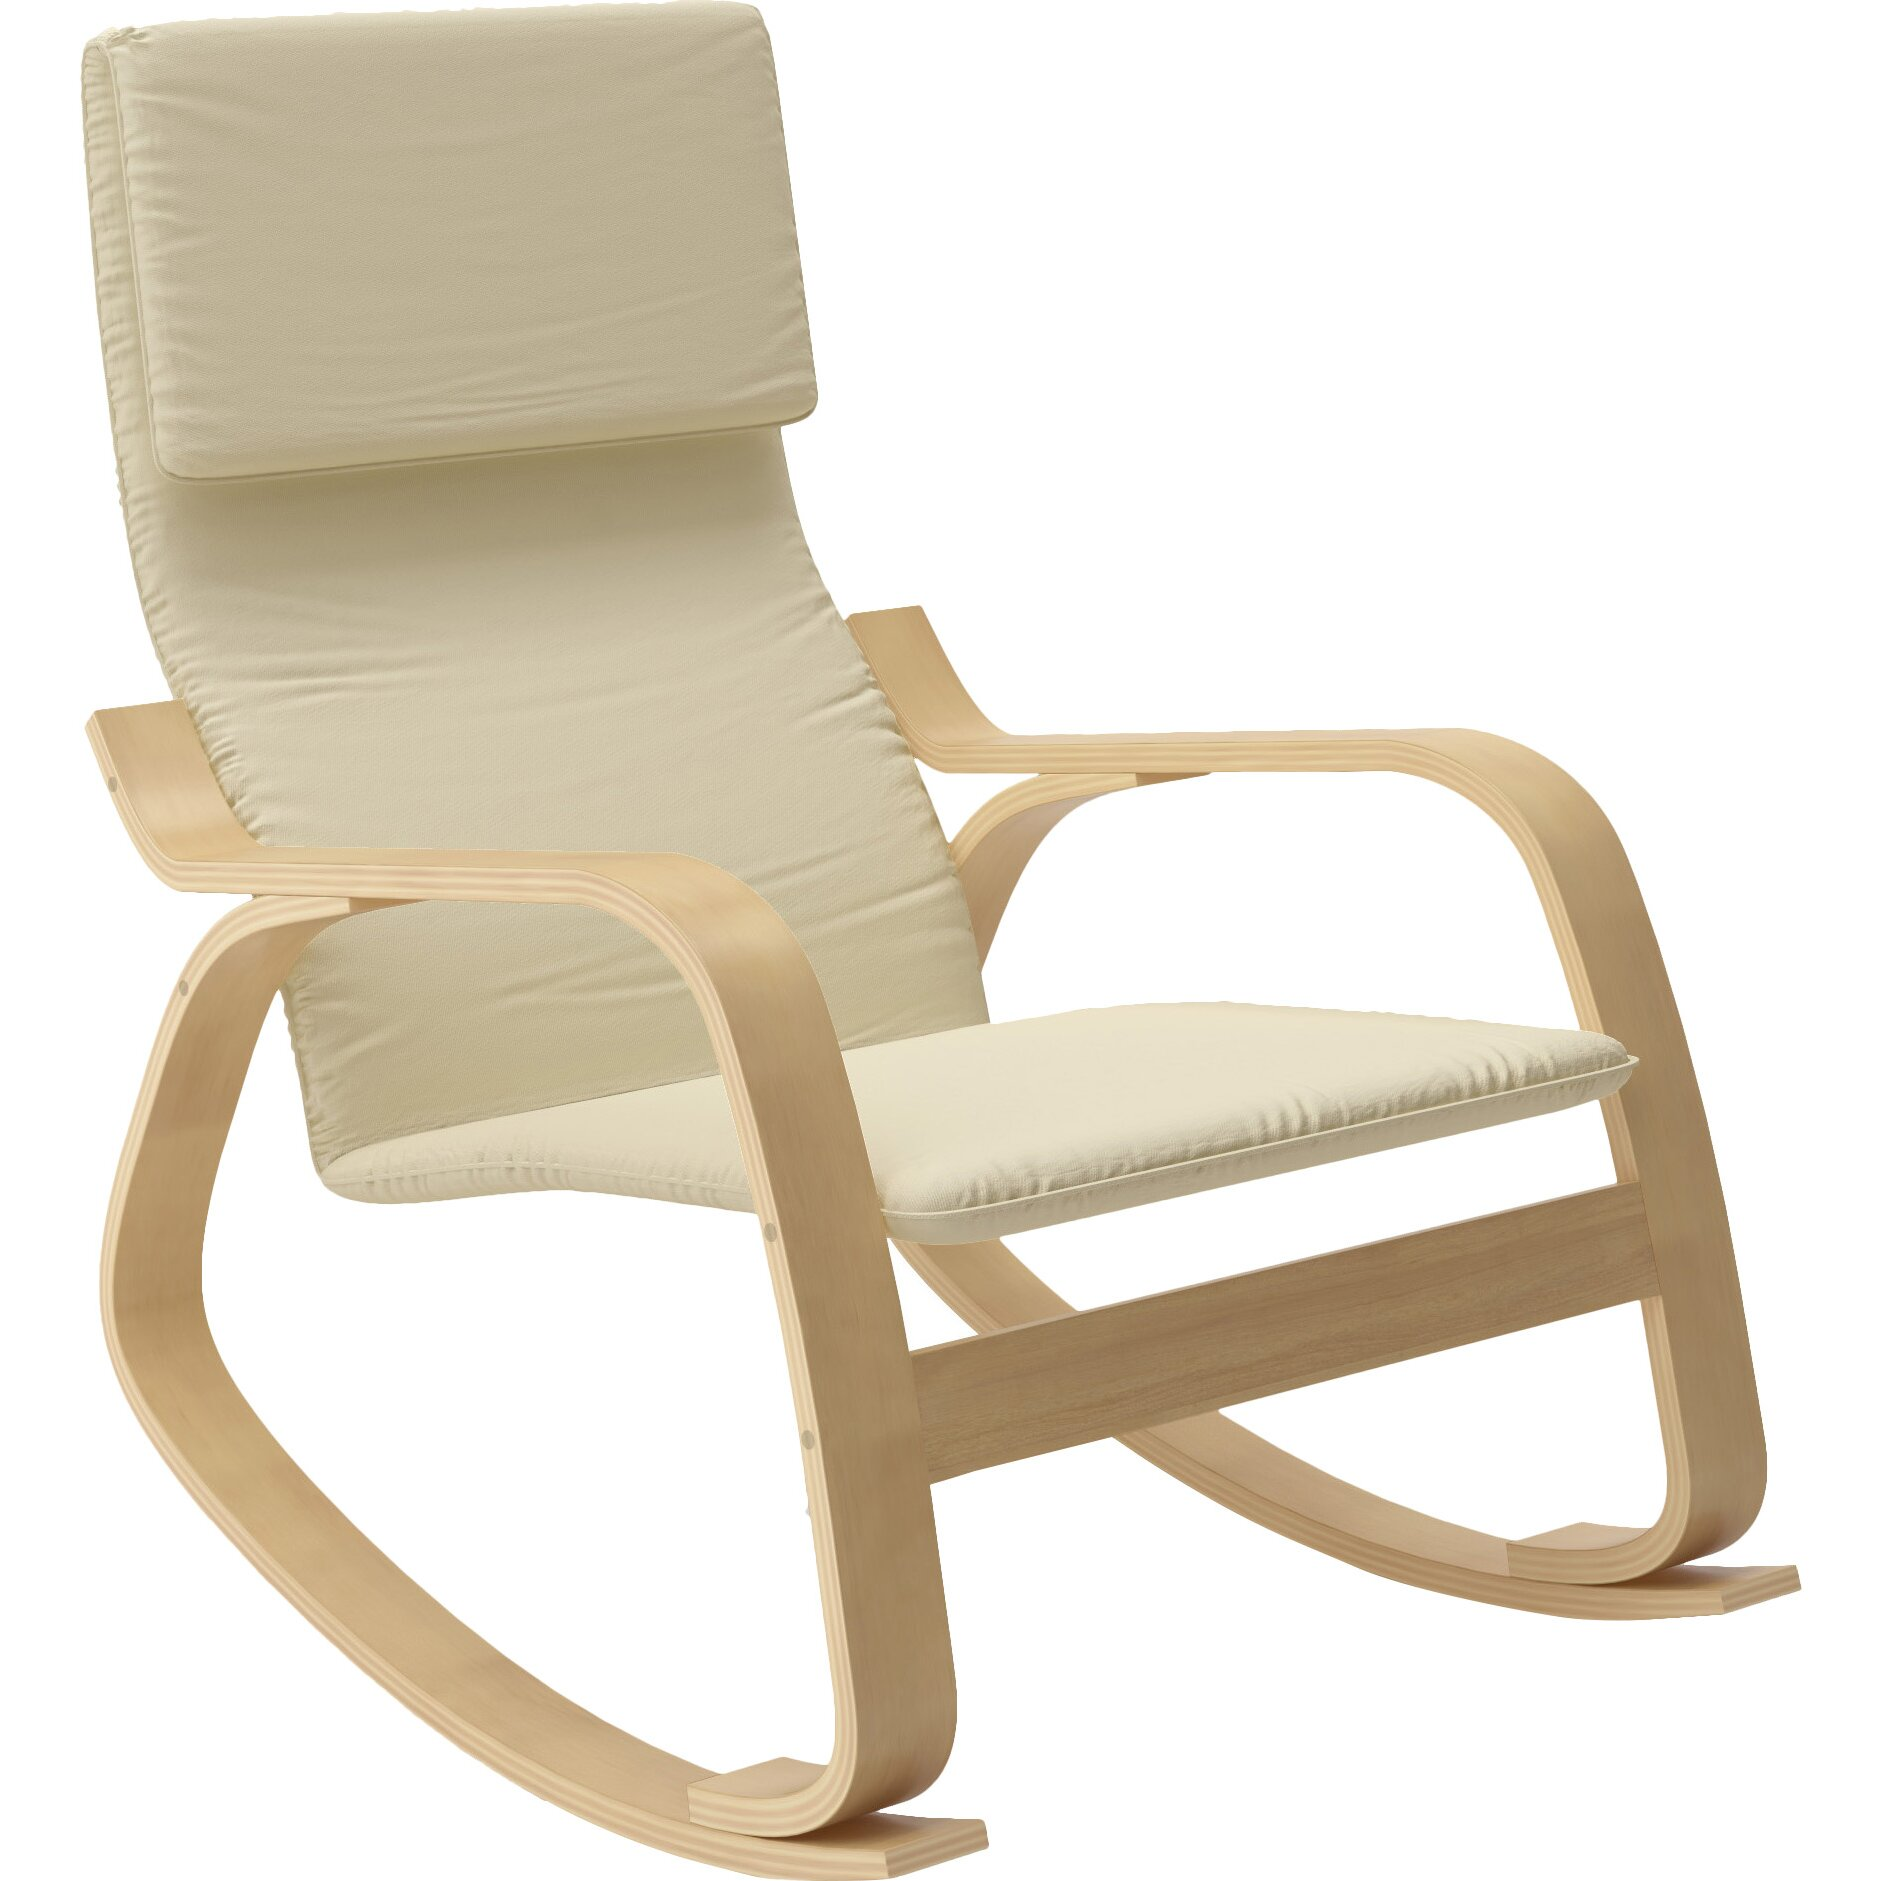 Dcor design aquios rocking chair reviews wayfair - Rocking chair but ...